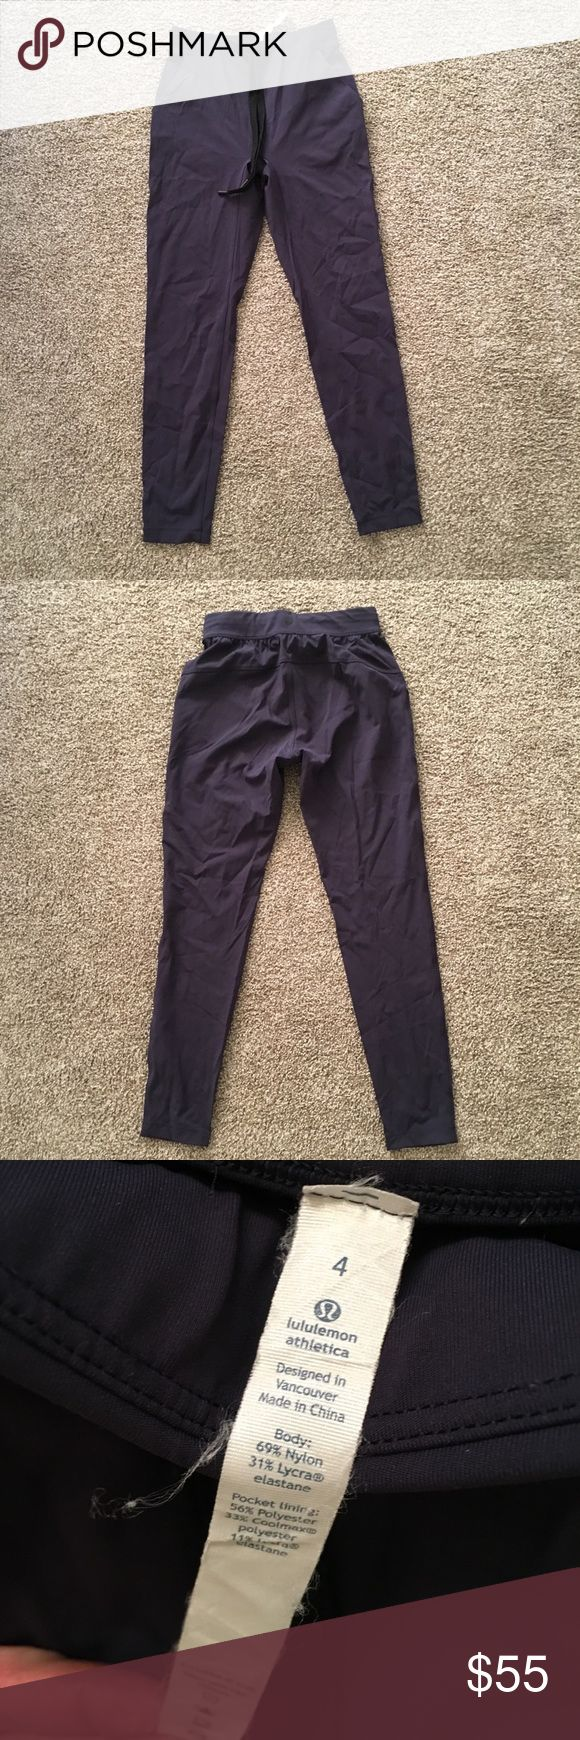 Women's Lululemon Pants In excellent used condition. This style is no longer available, sold out in stores and online. Size: 4. The color is blue with a purple undertone.  They are extremely comfortable. Great for lounging around, running errands, and/or exercising. I CrossFit and run, they are very comfortable during my exercise and keep me nice and warm.  👖ALWAYS OPEN TO REASONABLE OFFERS👖  😊BUNDLE FOR ADDITIONAL SAVINGS😊  👎🏻NO LOW BALLS PLEASE, MY PRICES ARE LOW AND VERY…